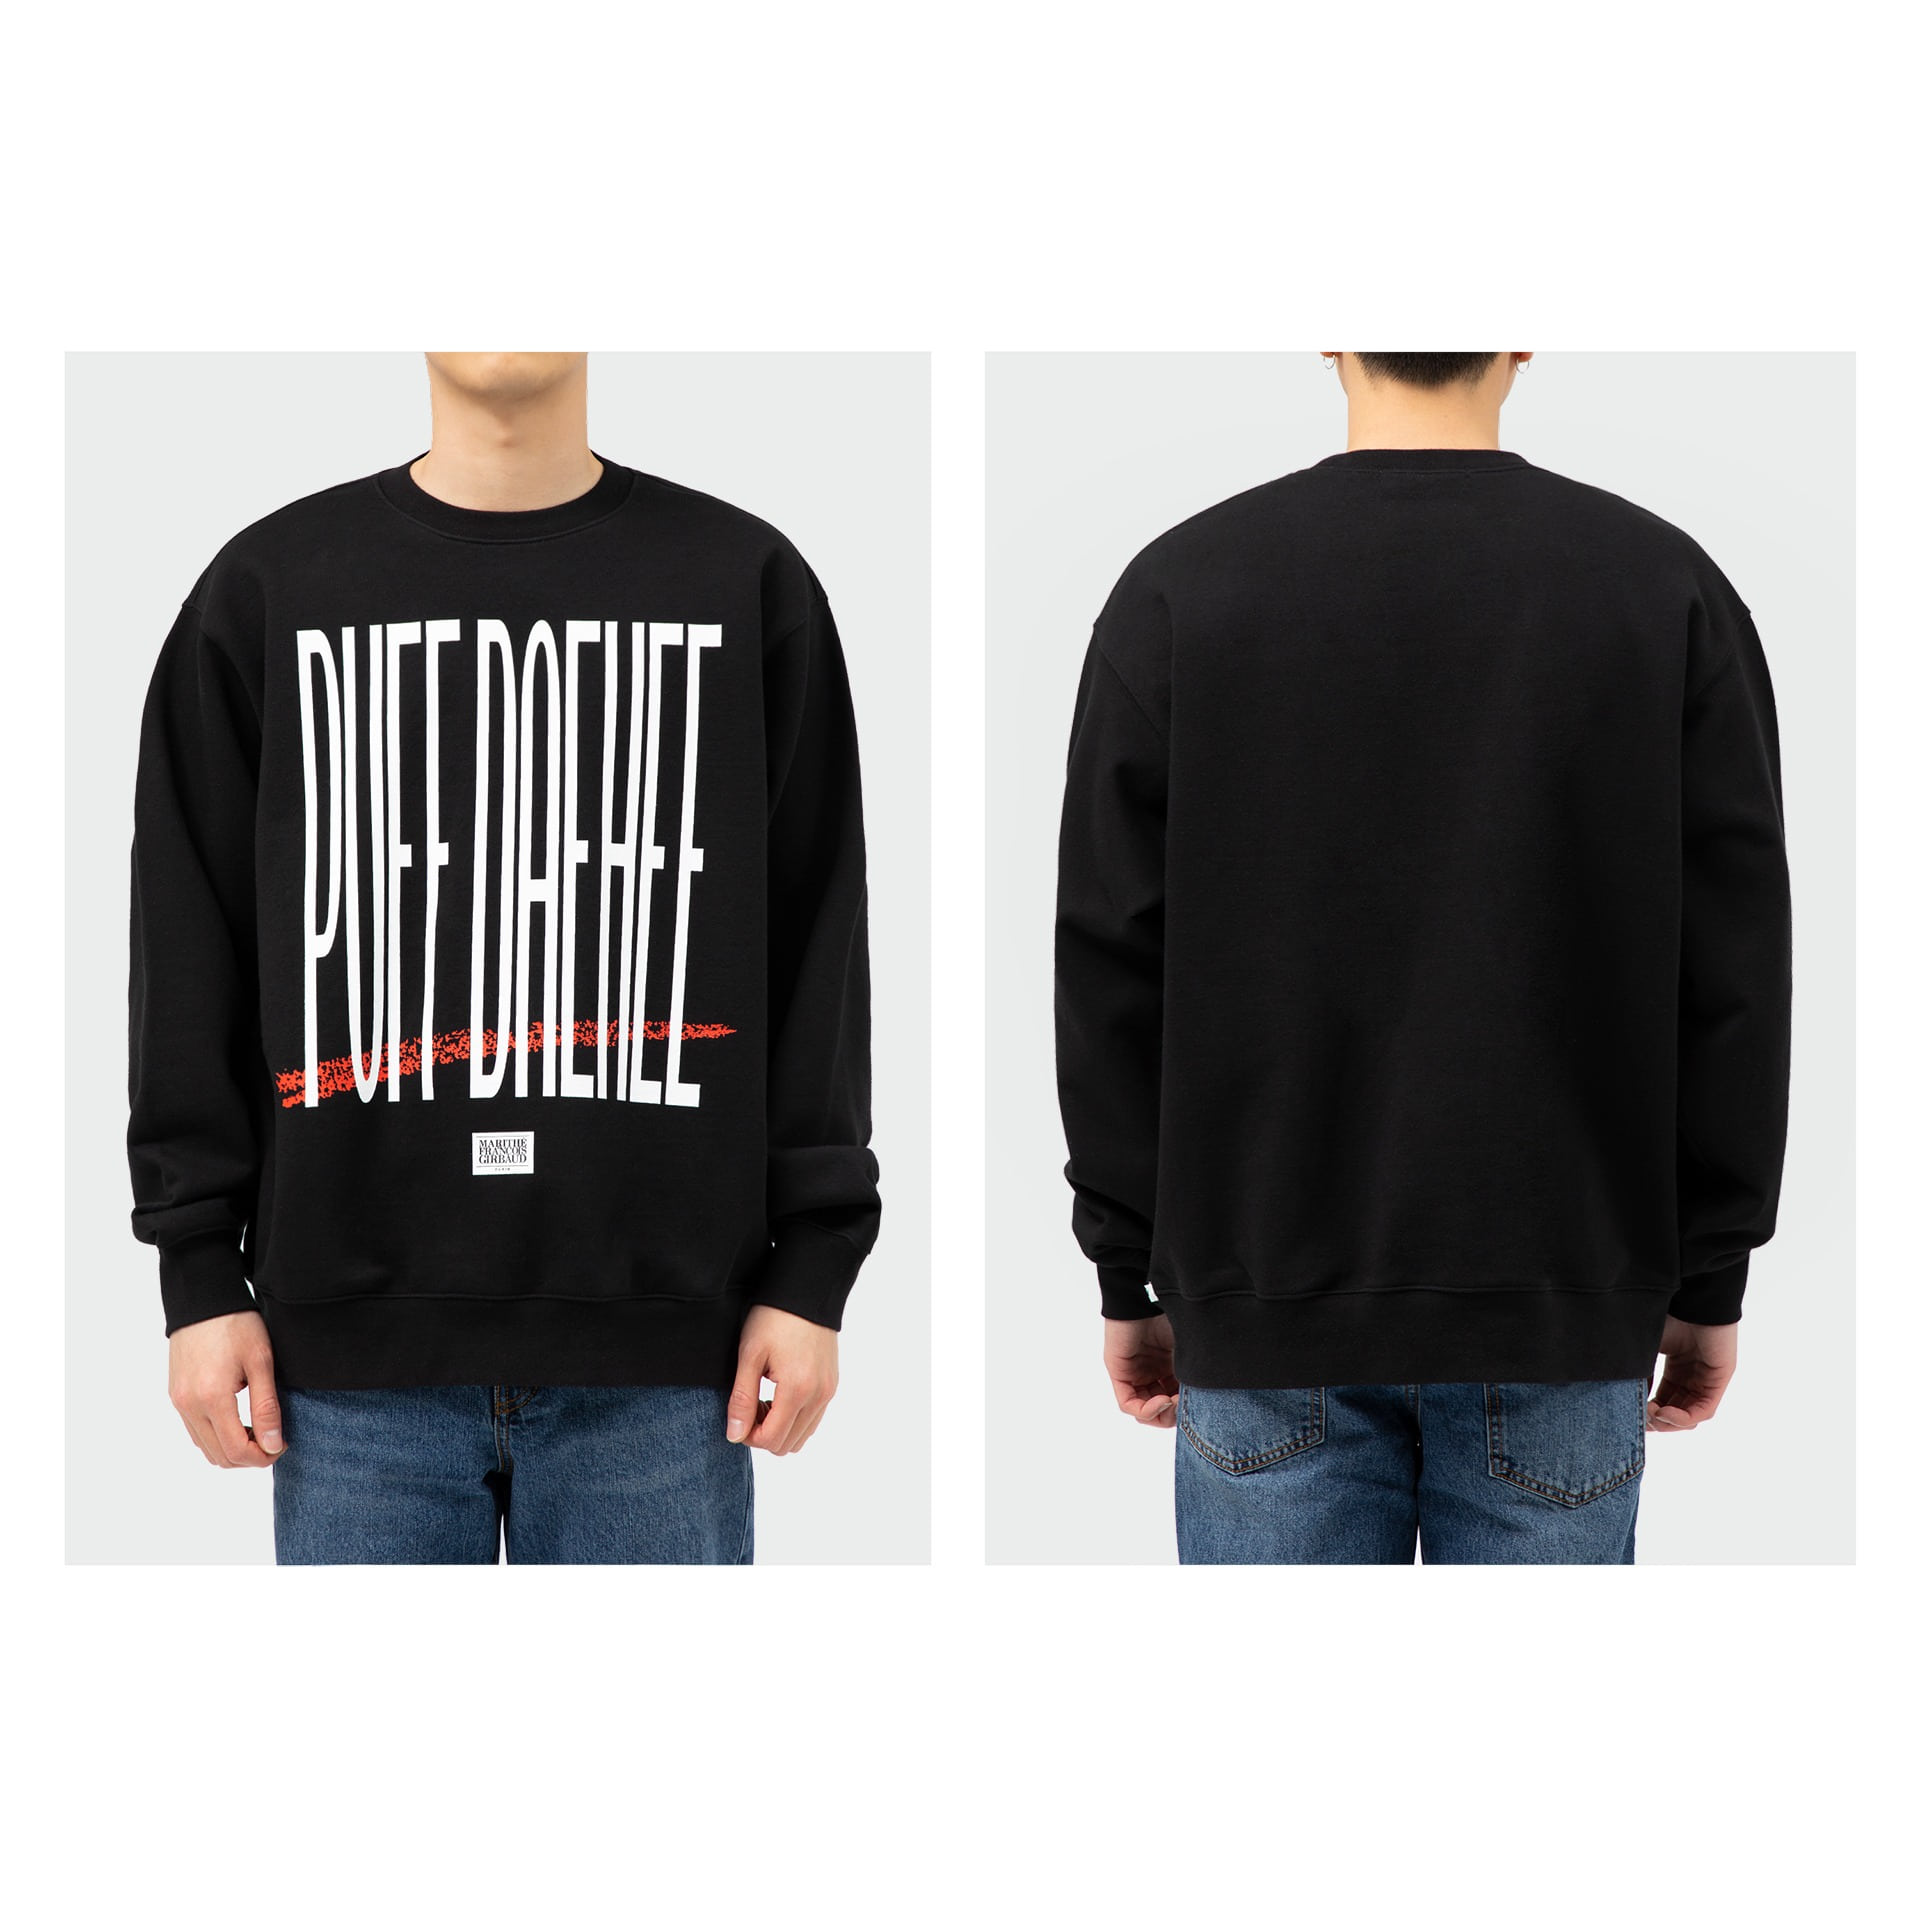 layer-MFG X 8BALLTOWN PUFF DAEHEE SWEATSHIRT black♡韓國男裝上衣